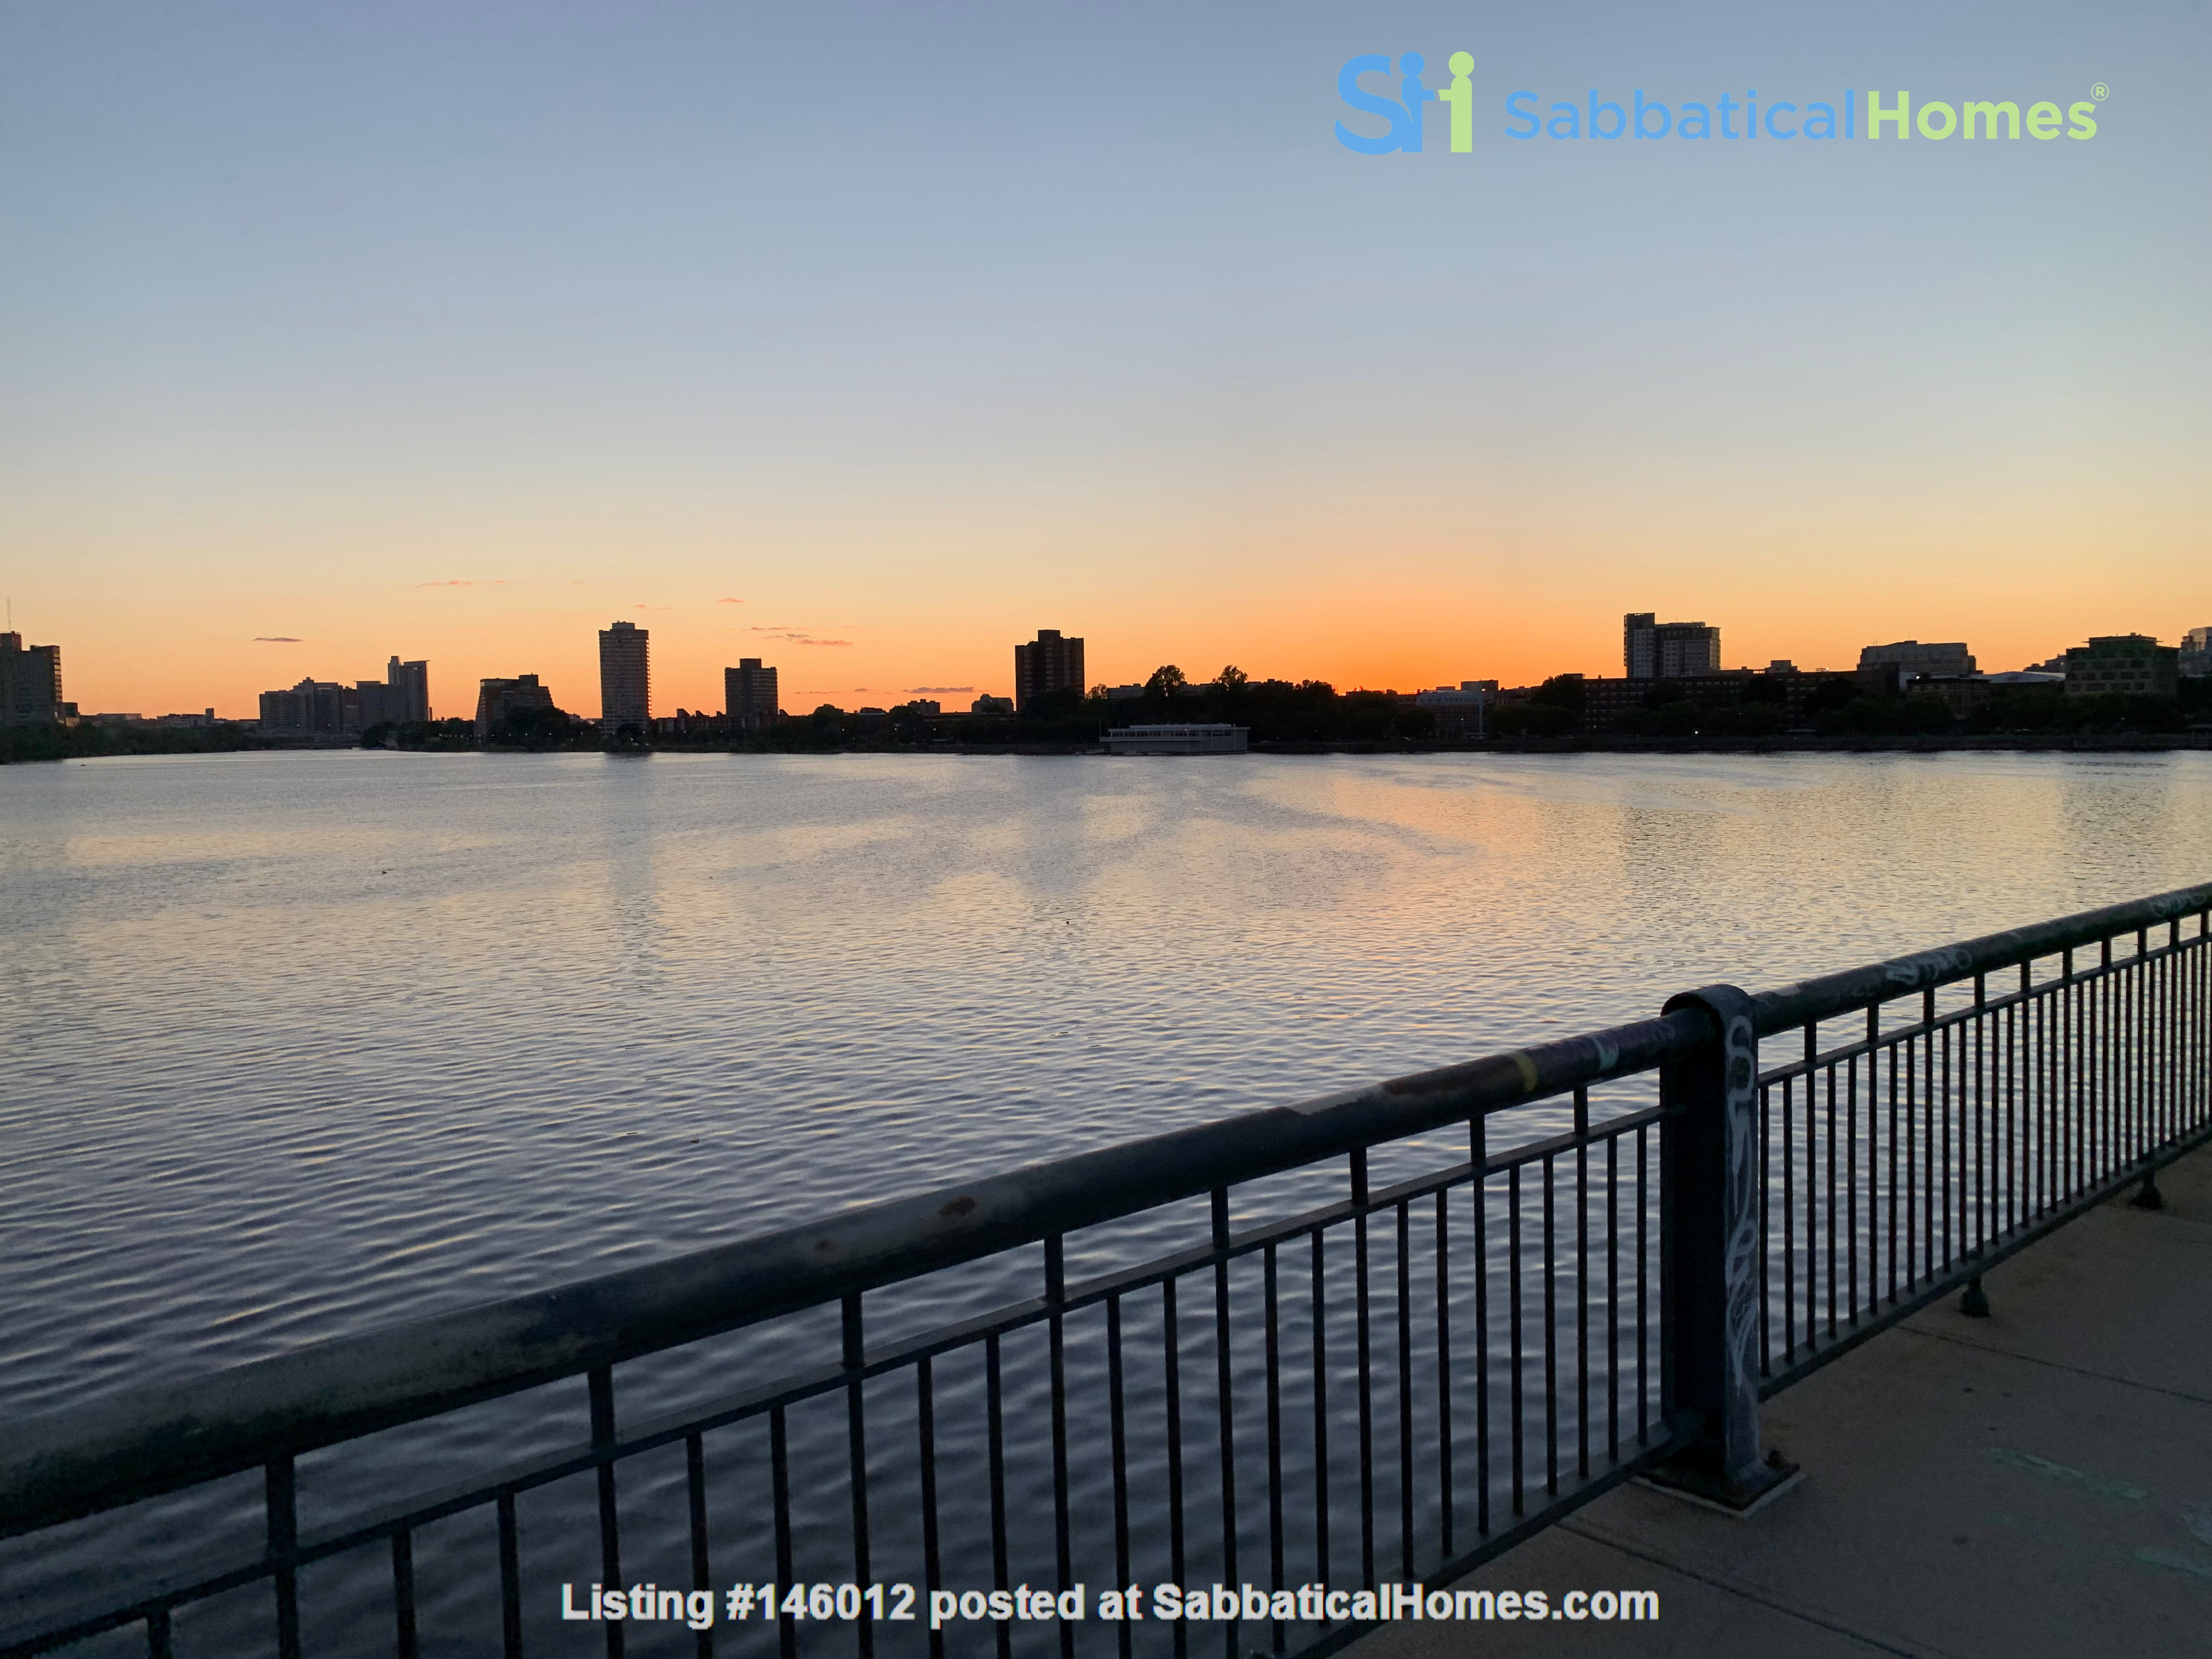 Lovely furnished 2-bedroom with private yard between Harvard and MIT Home Rental in Cambridge 6